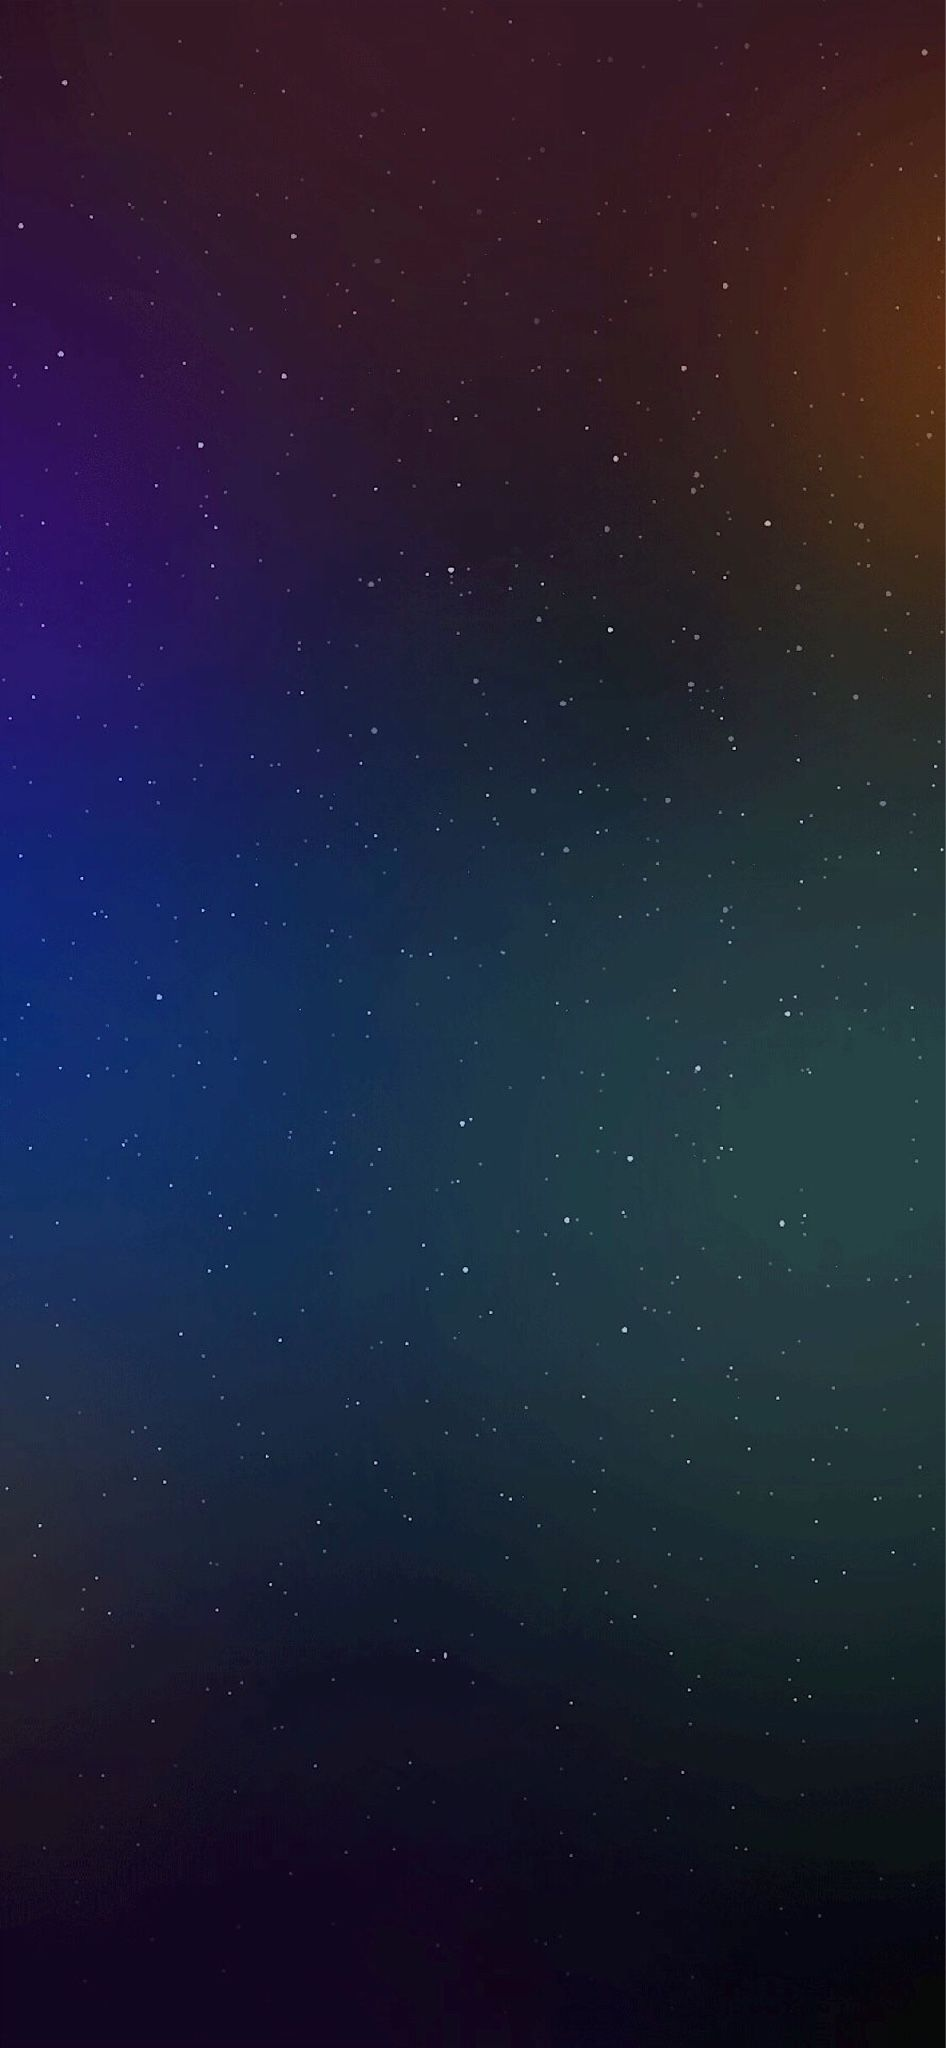 ios11 ios12 lockscreen homescreen backgrounds apple iphone ipad